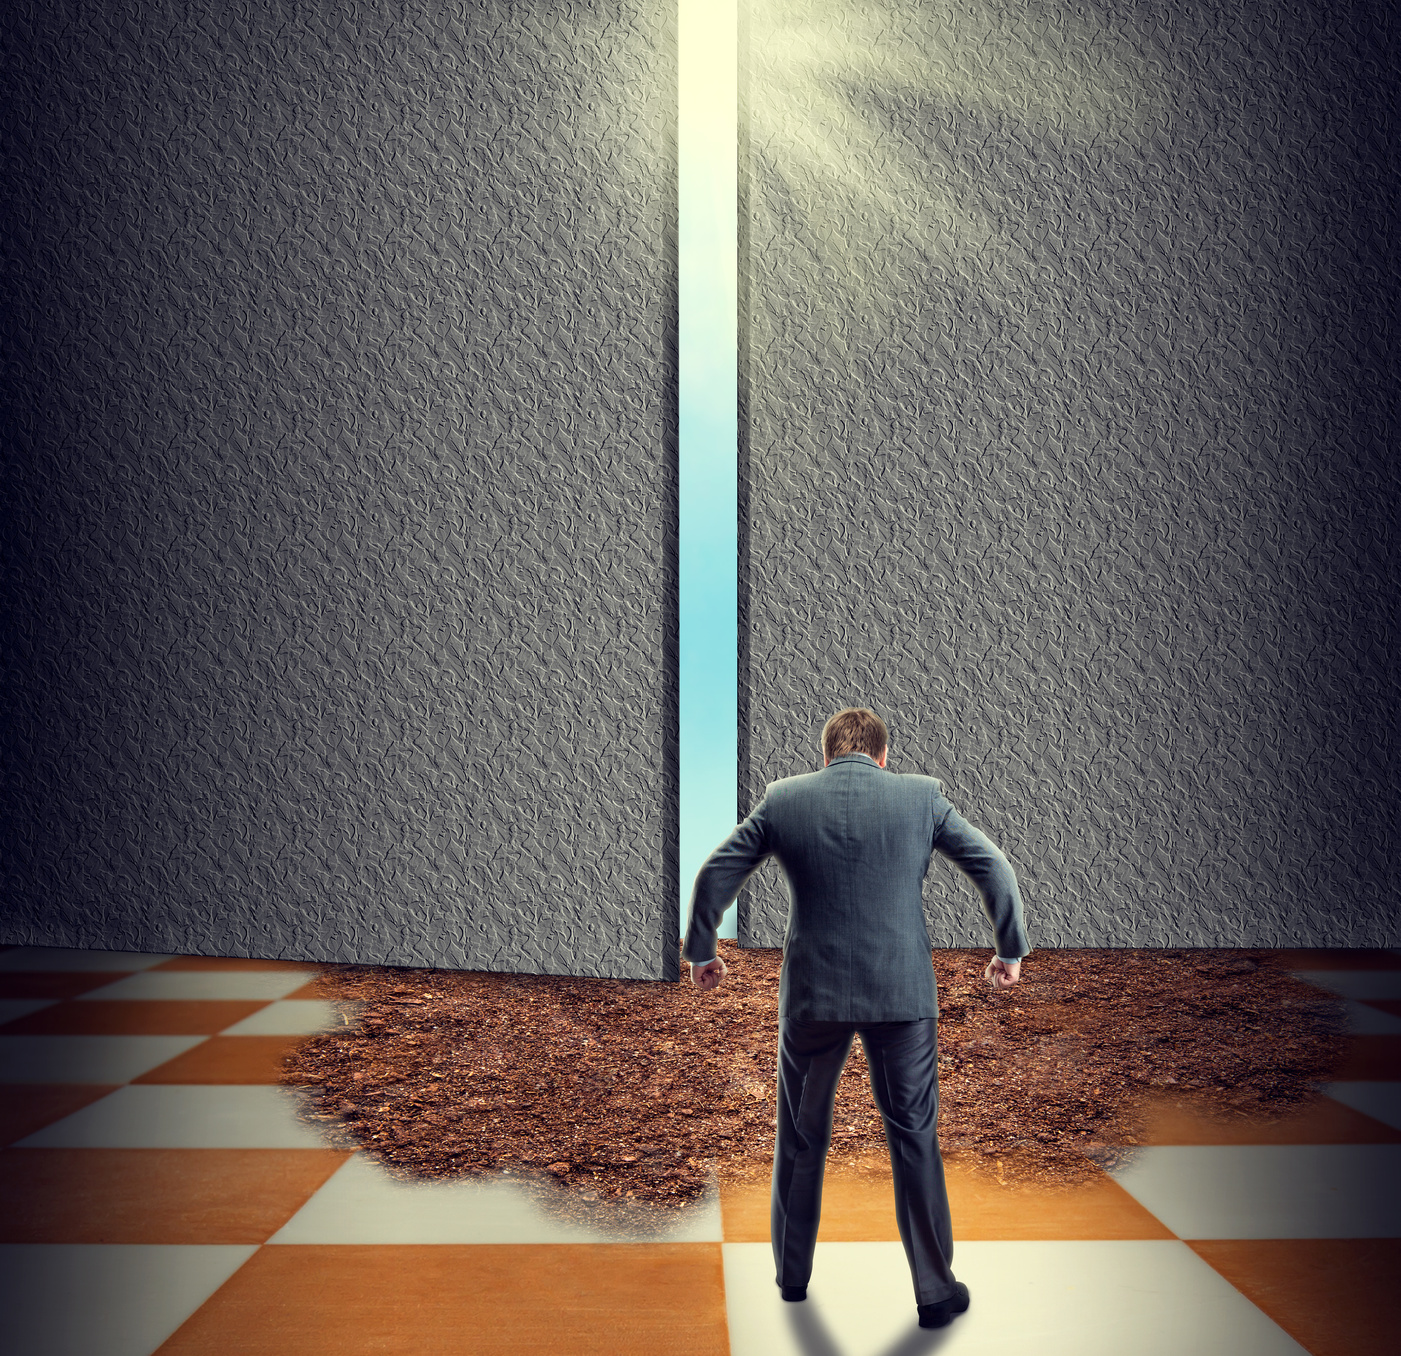 Angry businessman standing on the chess board in front of the door